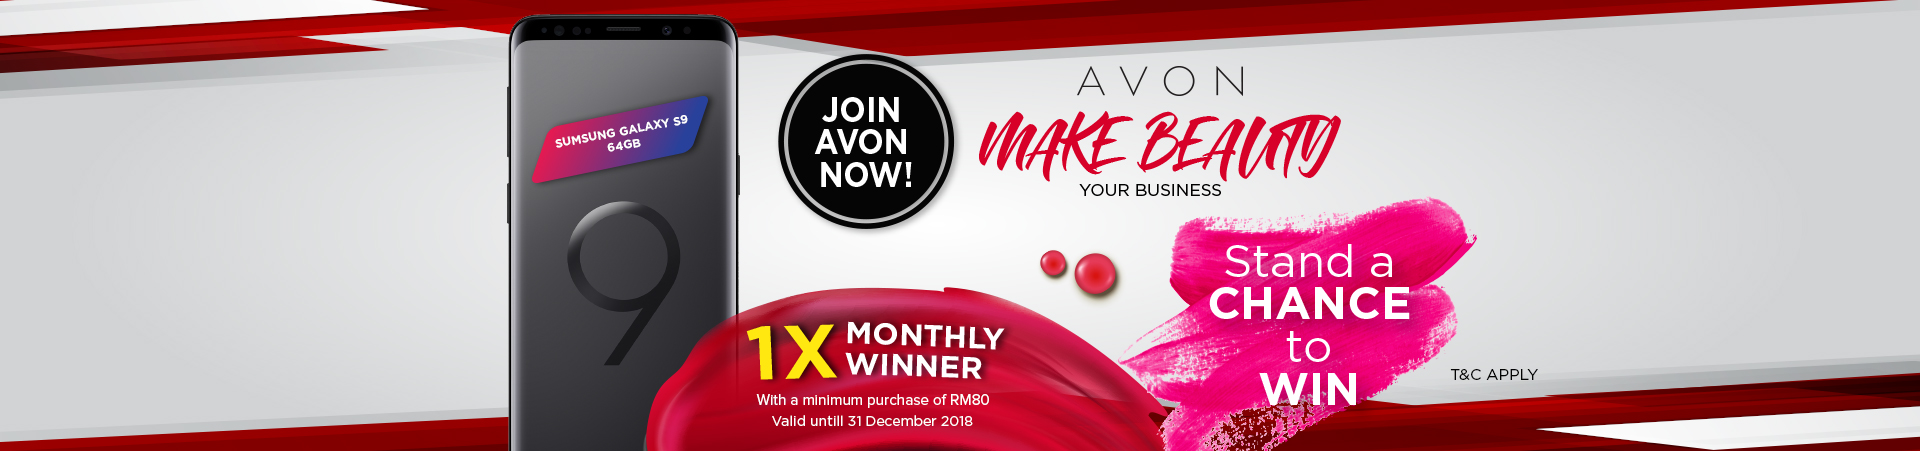 Gorgeous & Beautiful: Latest Campaign 20 product by Avon